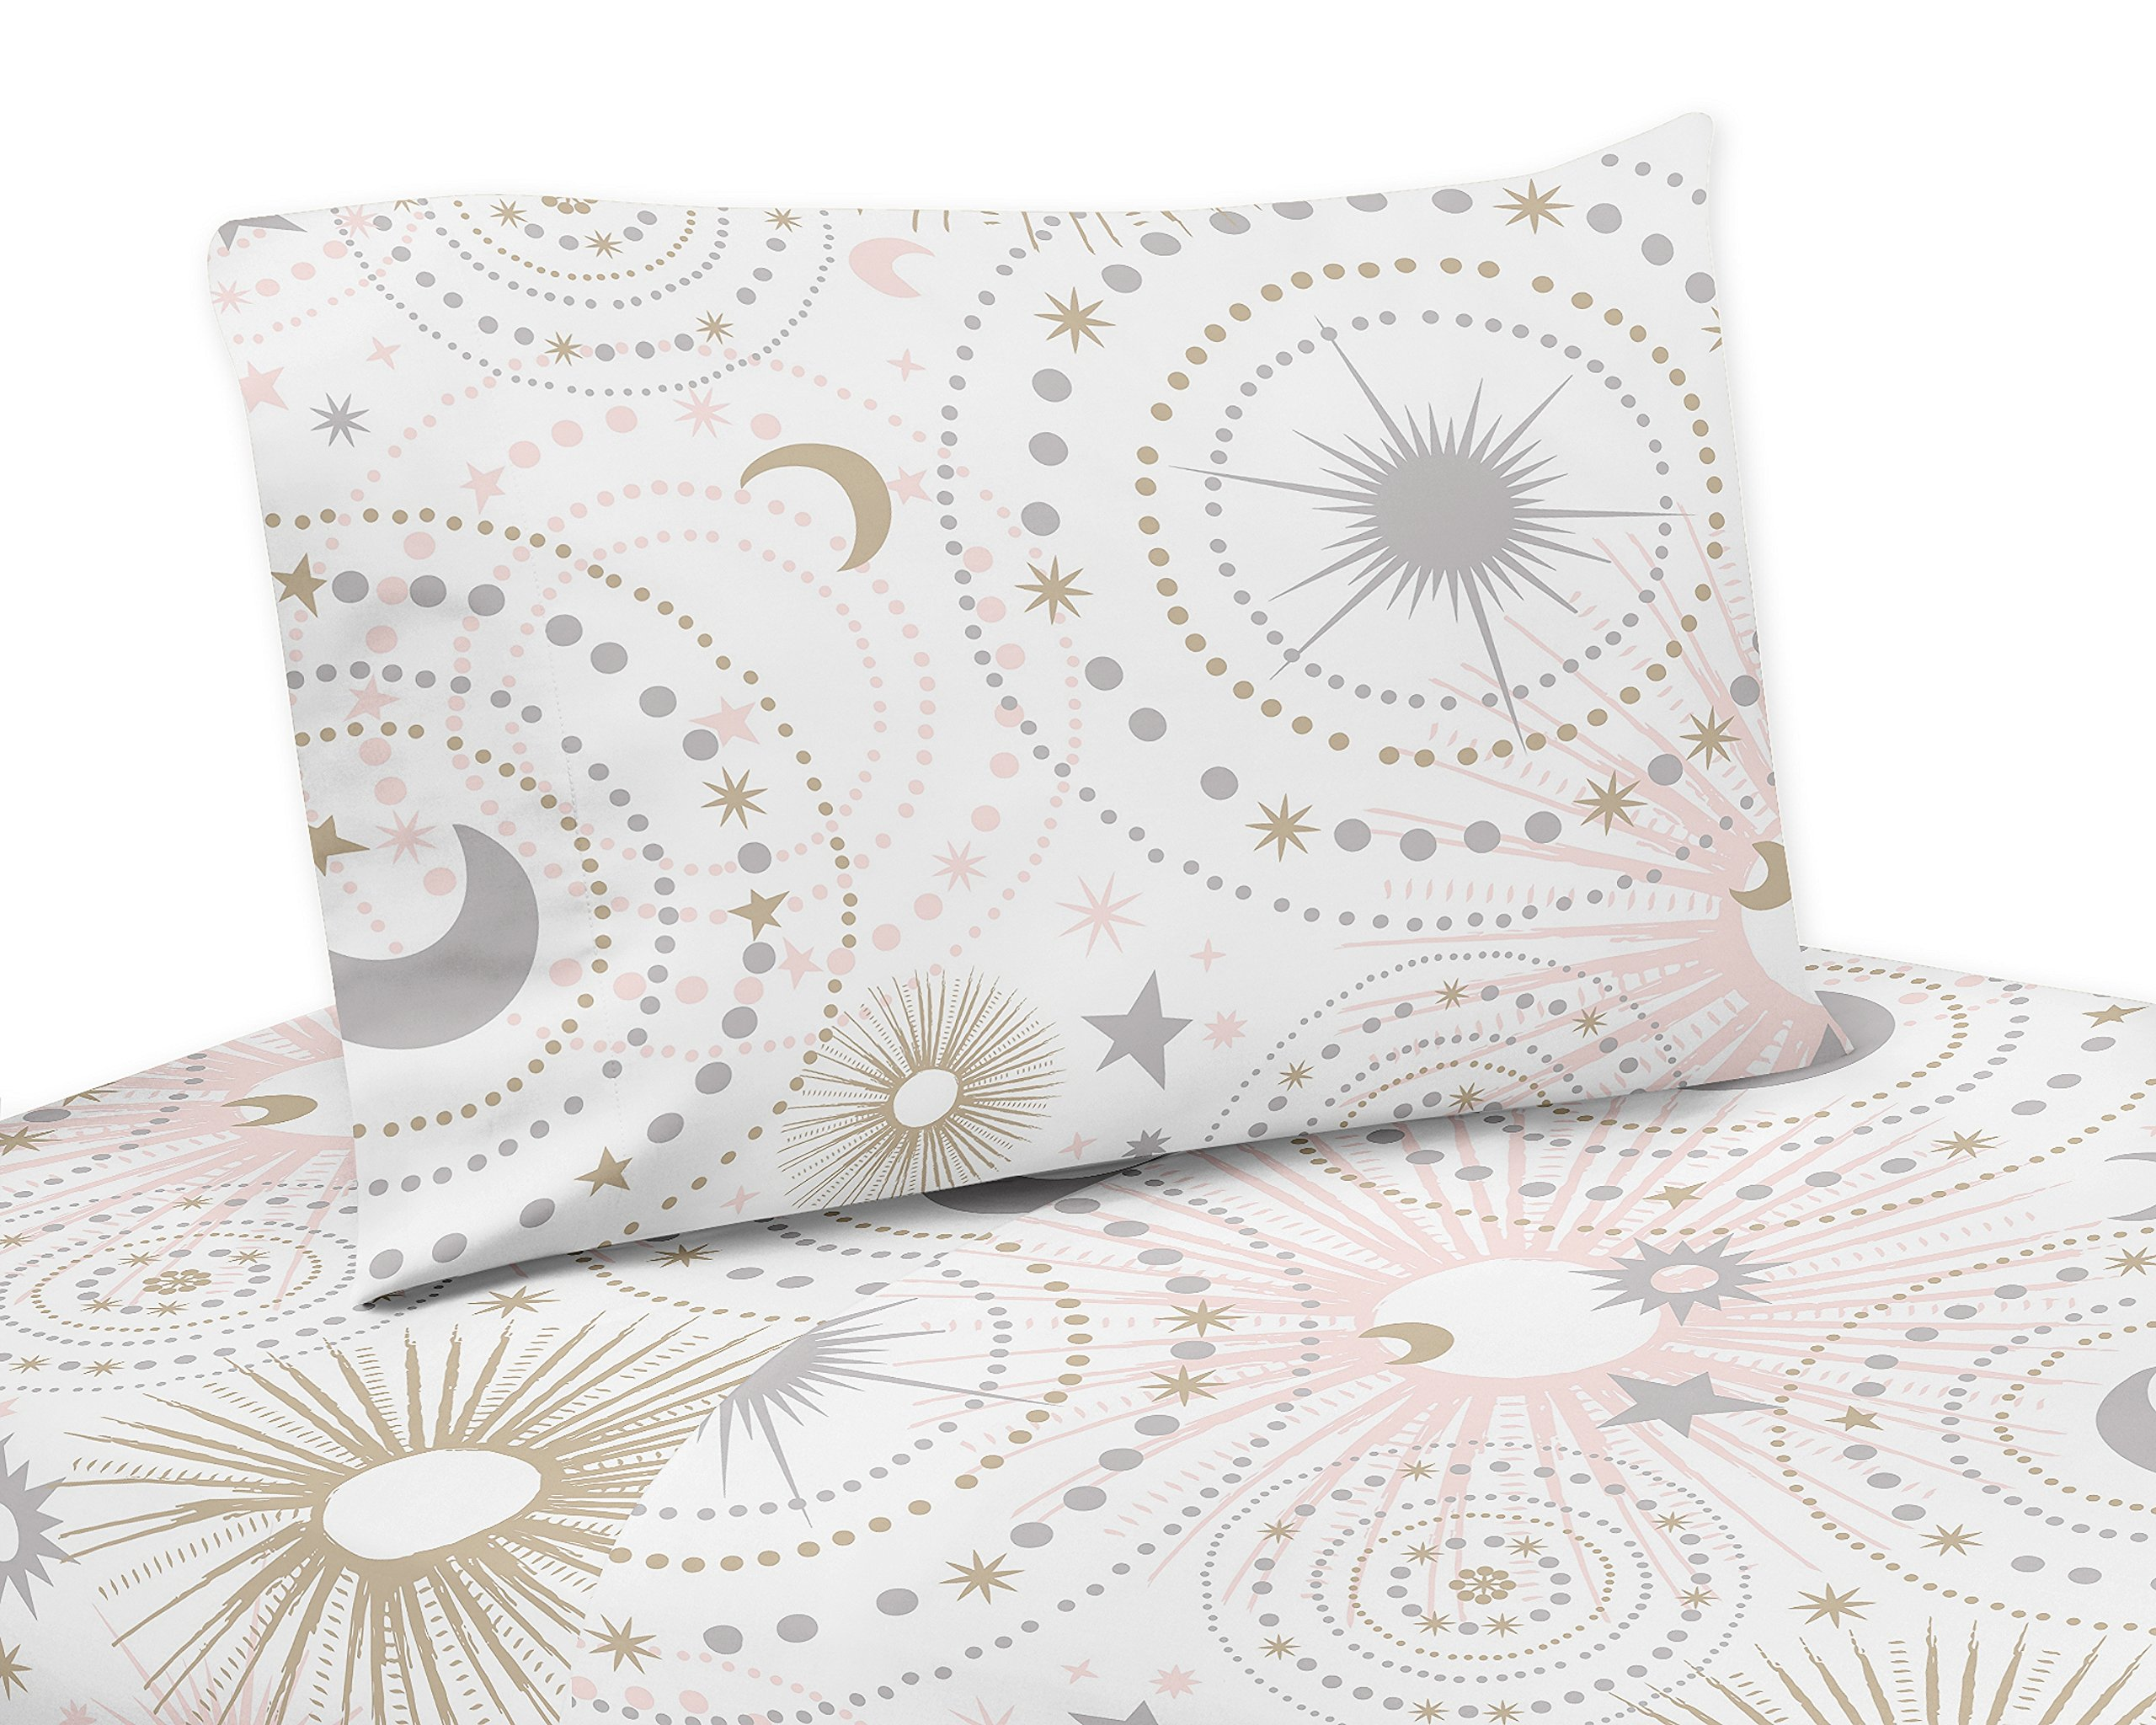 Sweet Jojo Designs 4-Piece Blush Pink, Gold, Grey and White Star and Moon Queen Sheet Set for Celestial Collection set